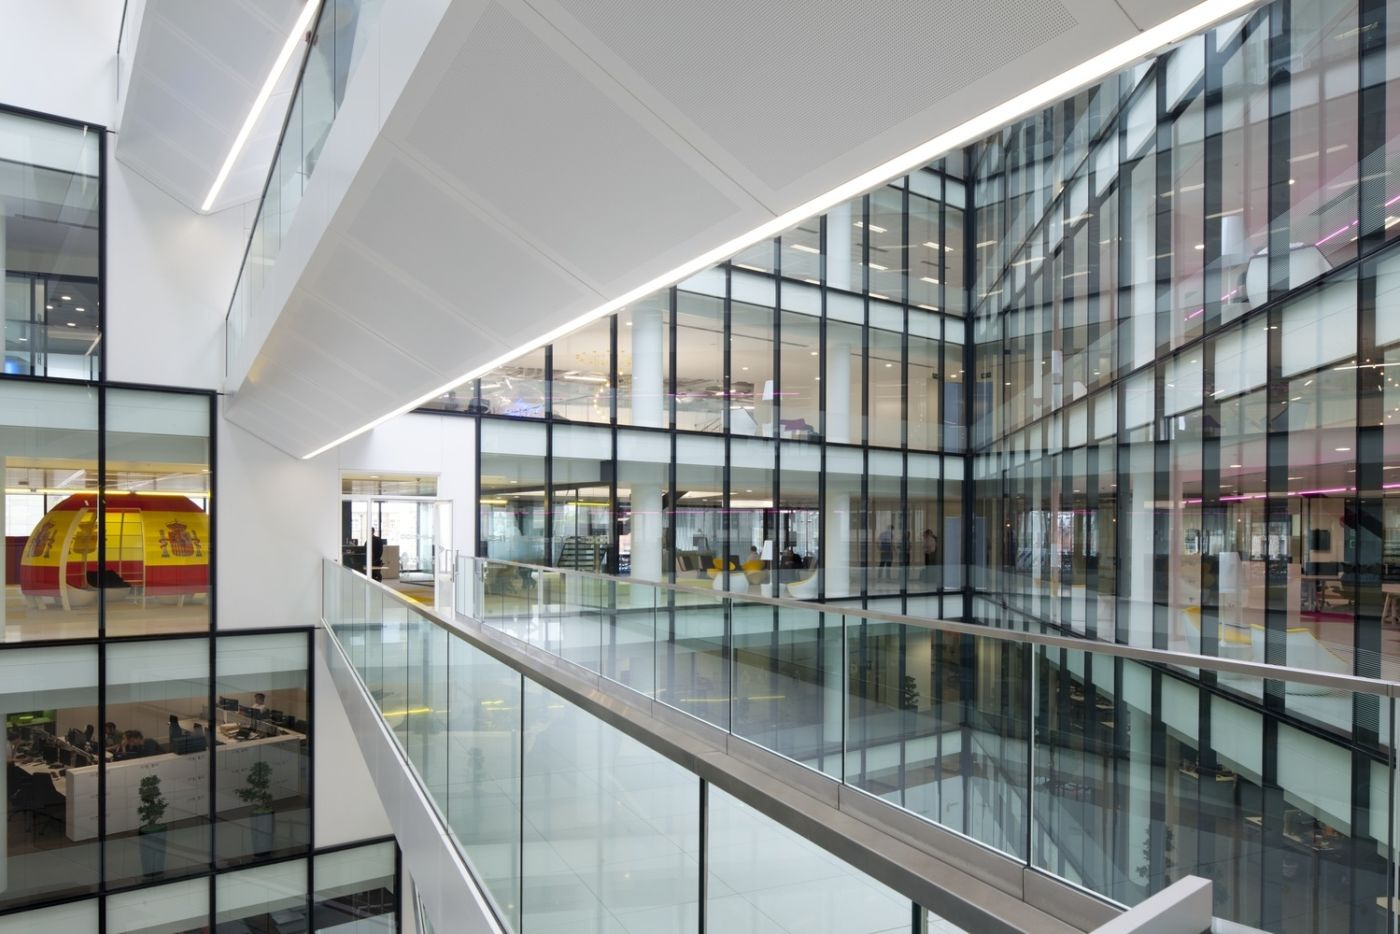 Mezzanine view of all office levels